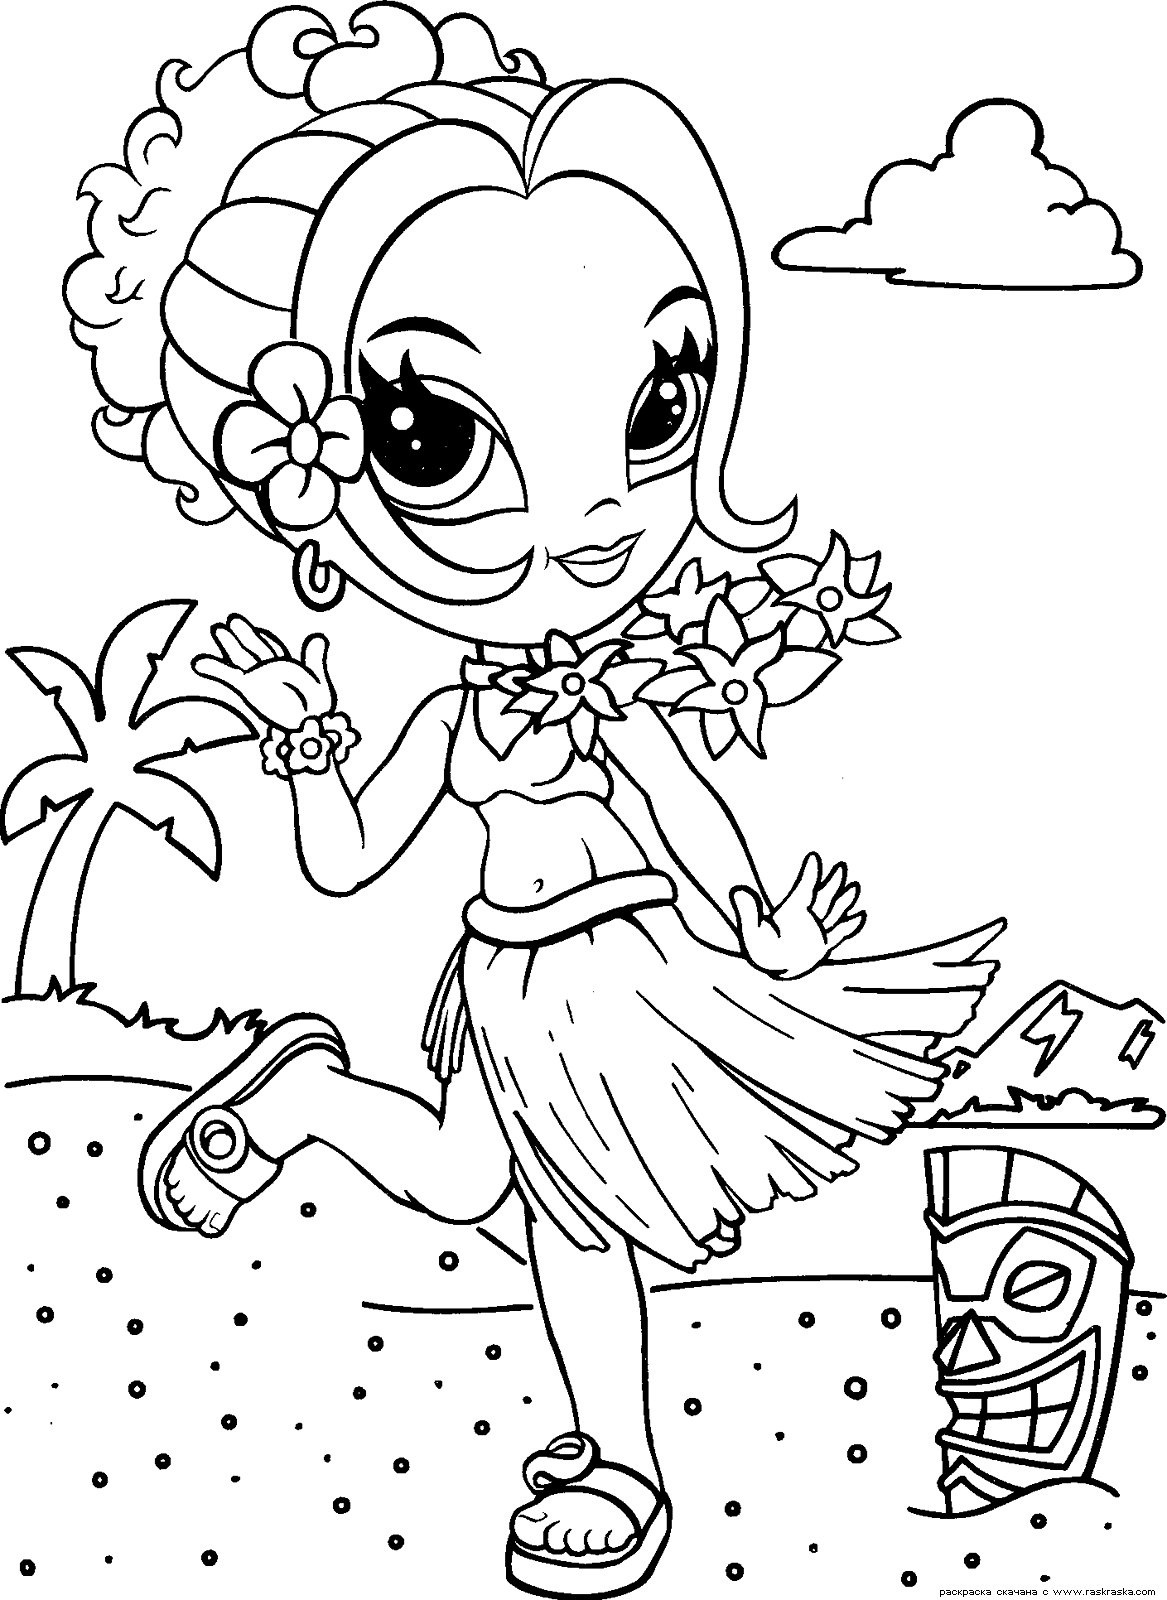 Prineable Lisa Frank Coloring Pages Coloring Me